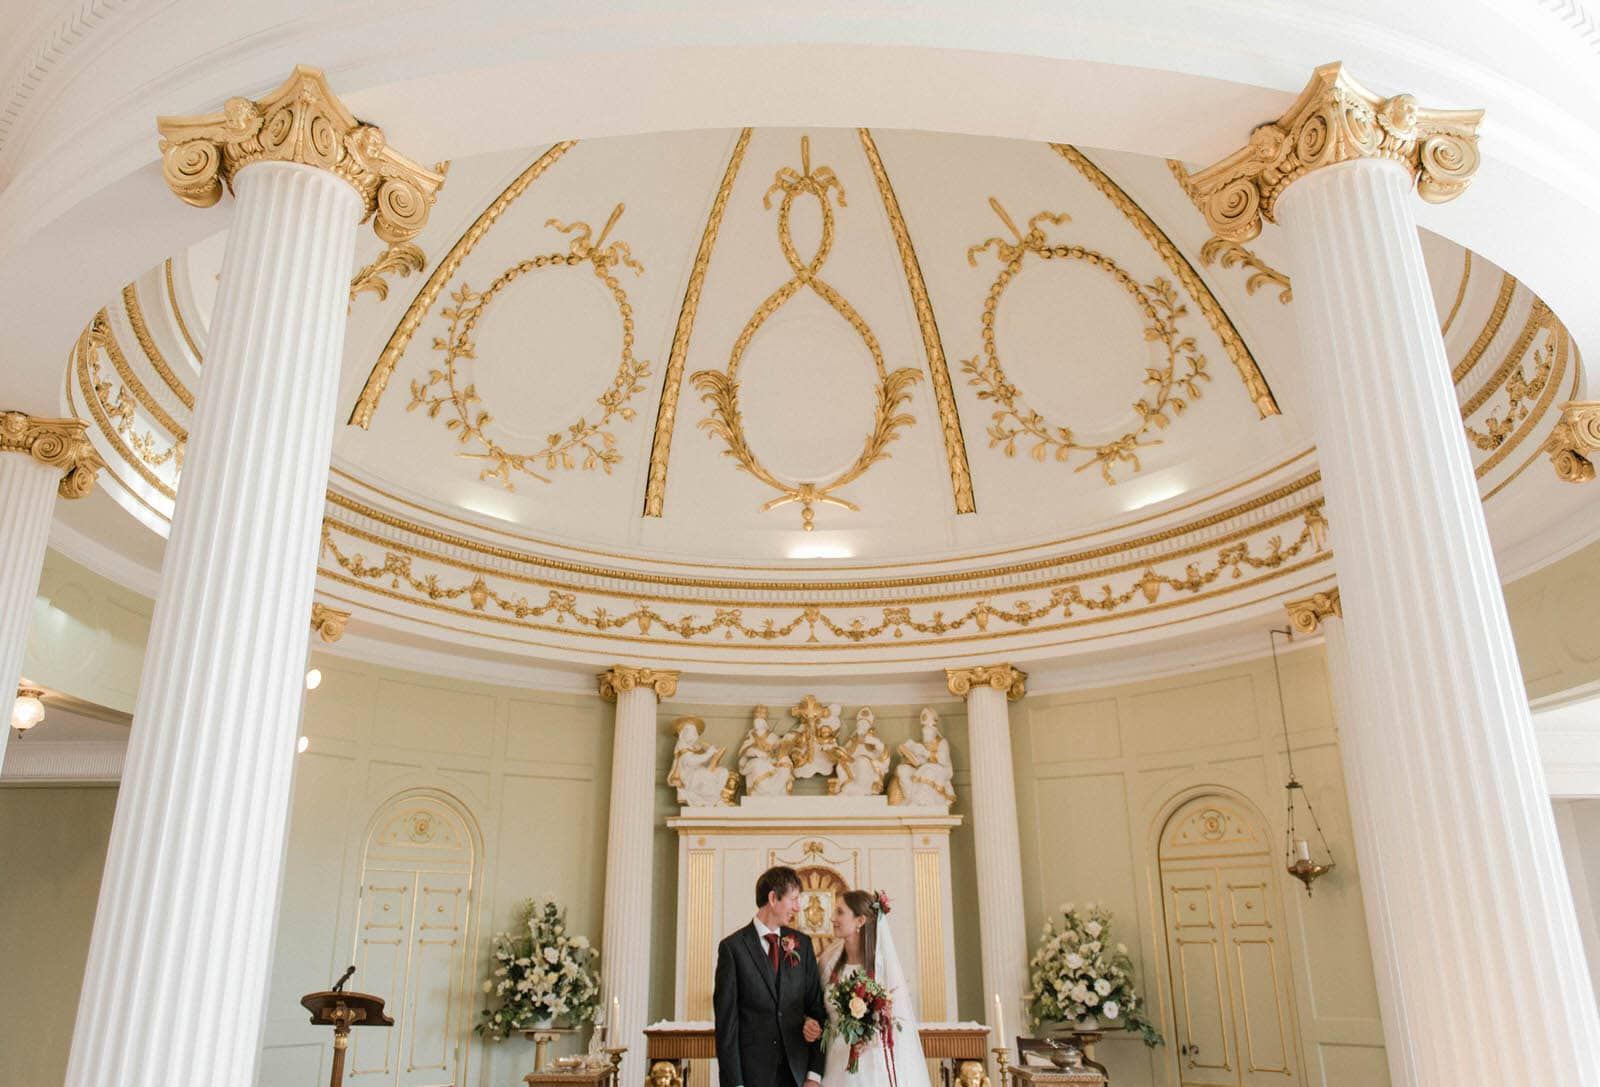 Wedding ceremony in York with the bride and groom stood in the beautiful, ornate Bar Convent Chapel